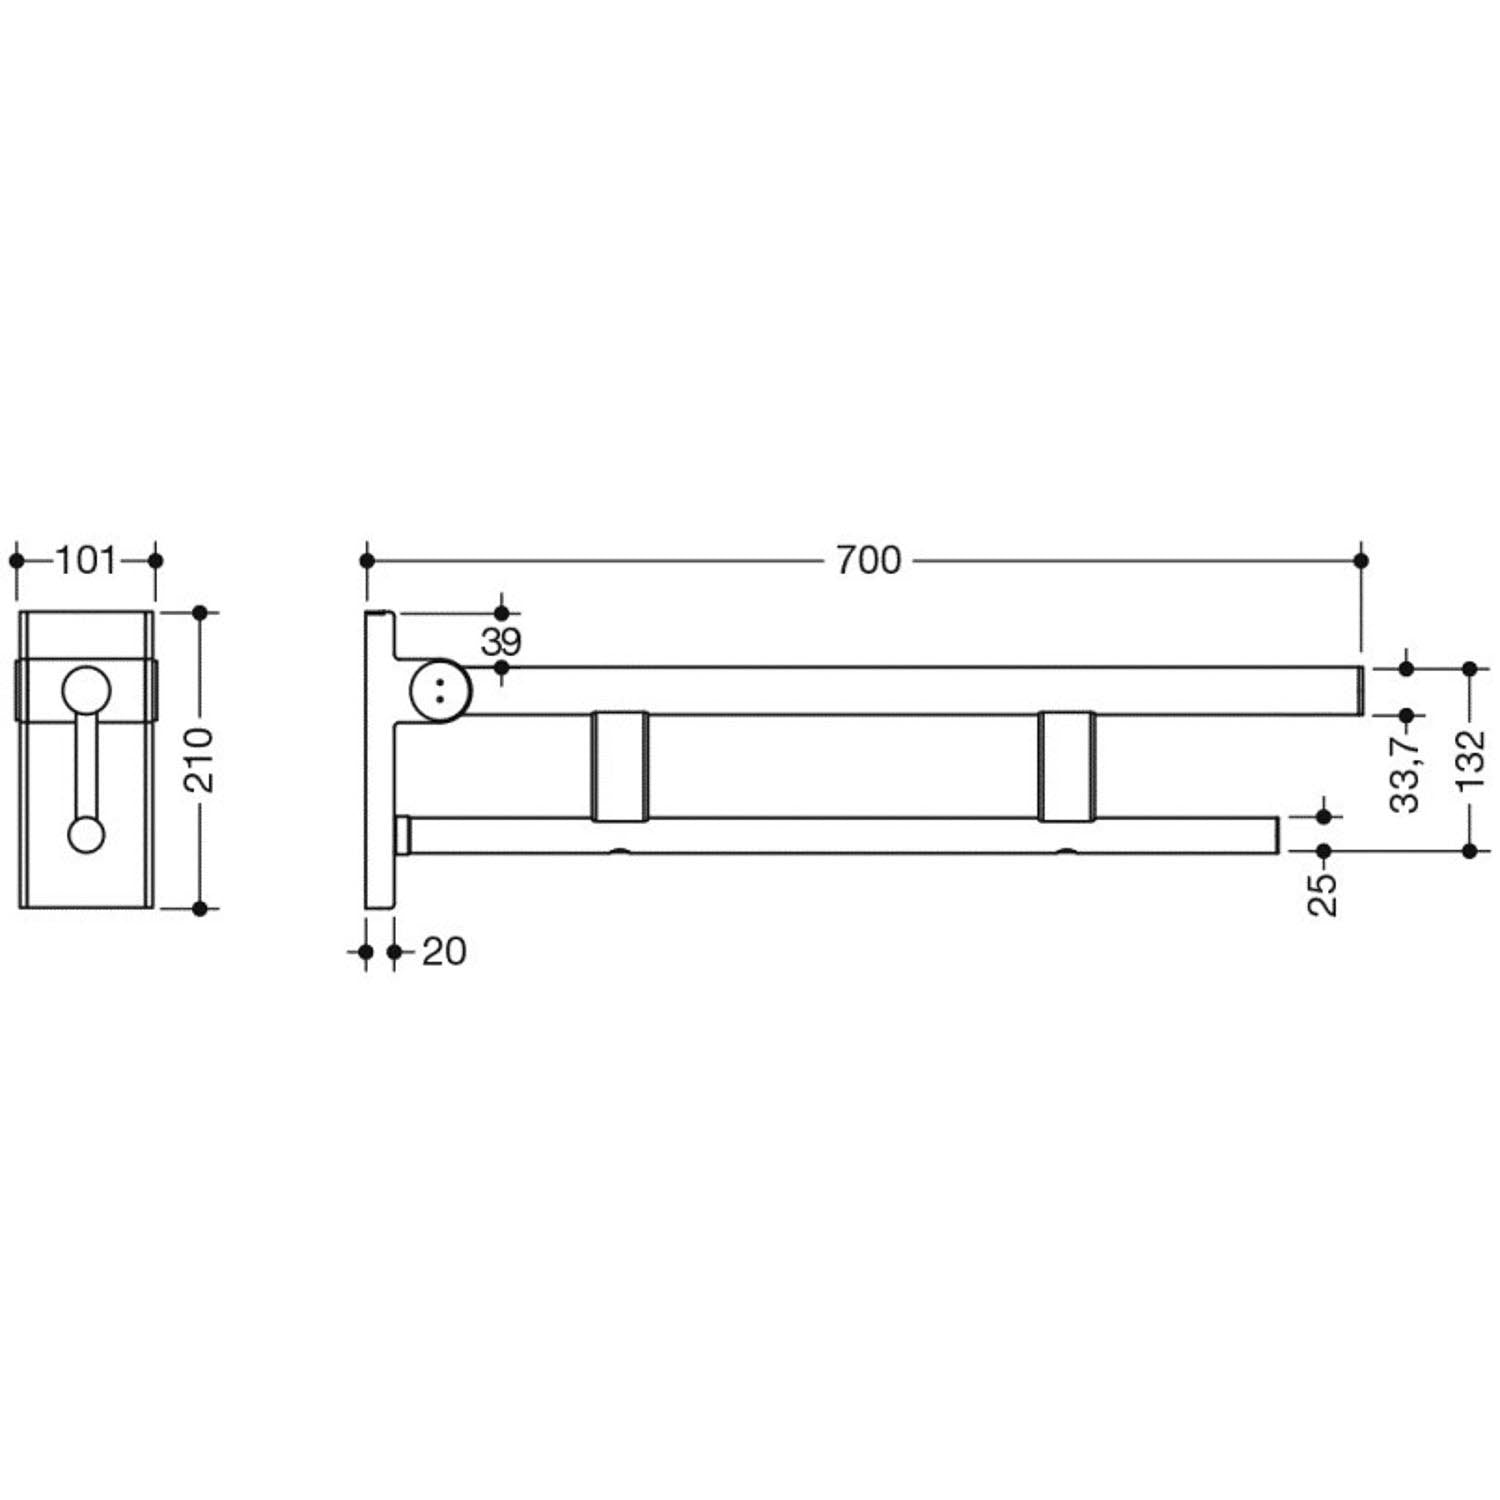 700mm Freestyle Removable Hinged Grab Rail Set with a matt black finish dimensional drawing